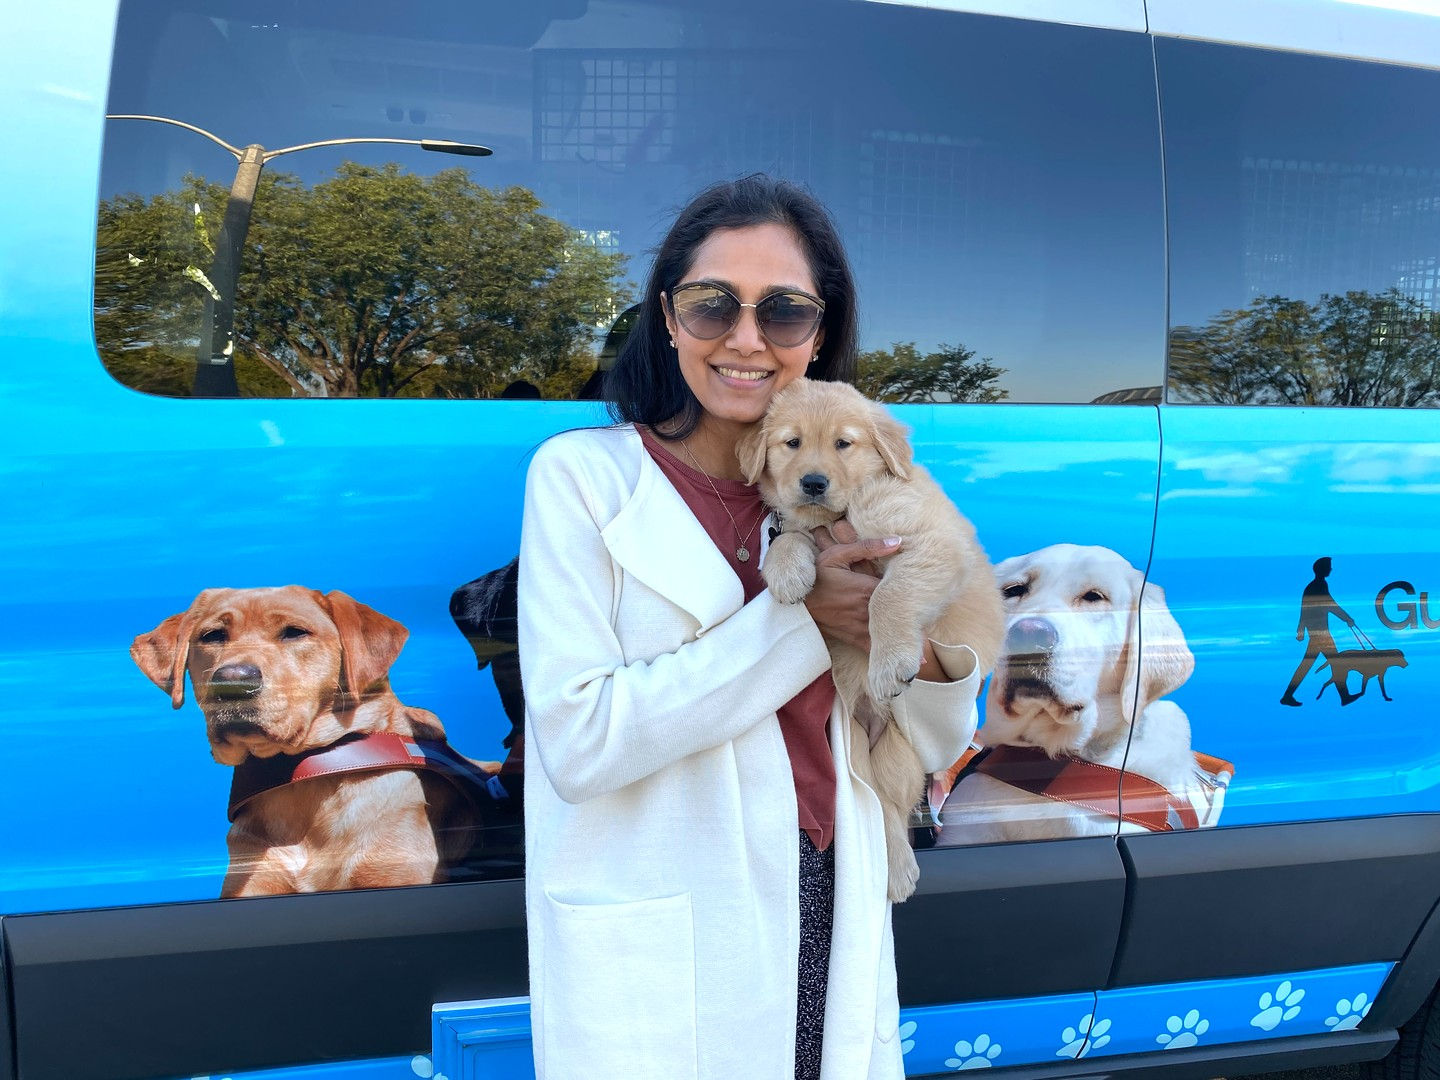 Daya with Puff at the puppy truck